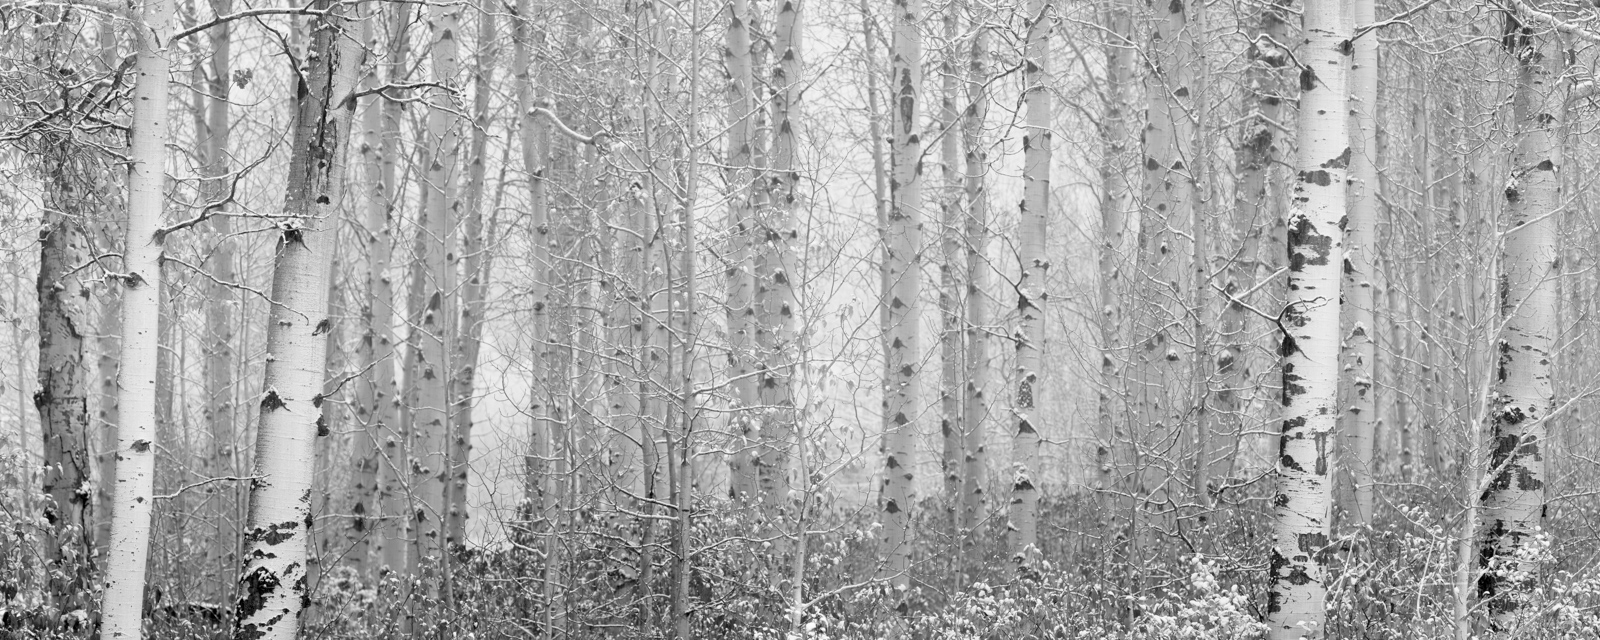 A limited edition fine art photographic print of 50 archival Museum Quality artworks of these beautiful Birch trees.  The photos...